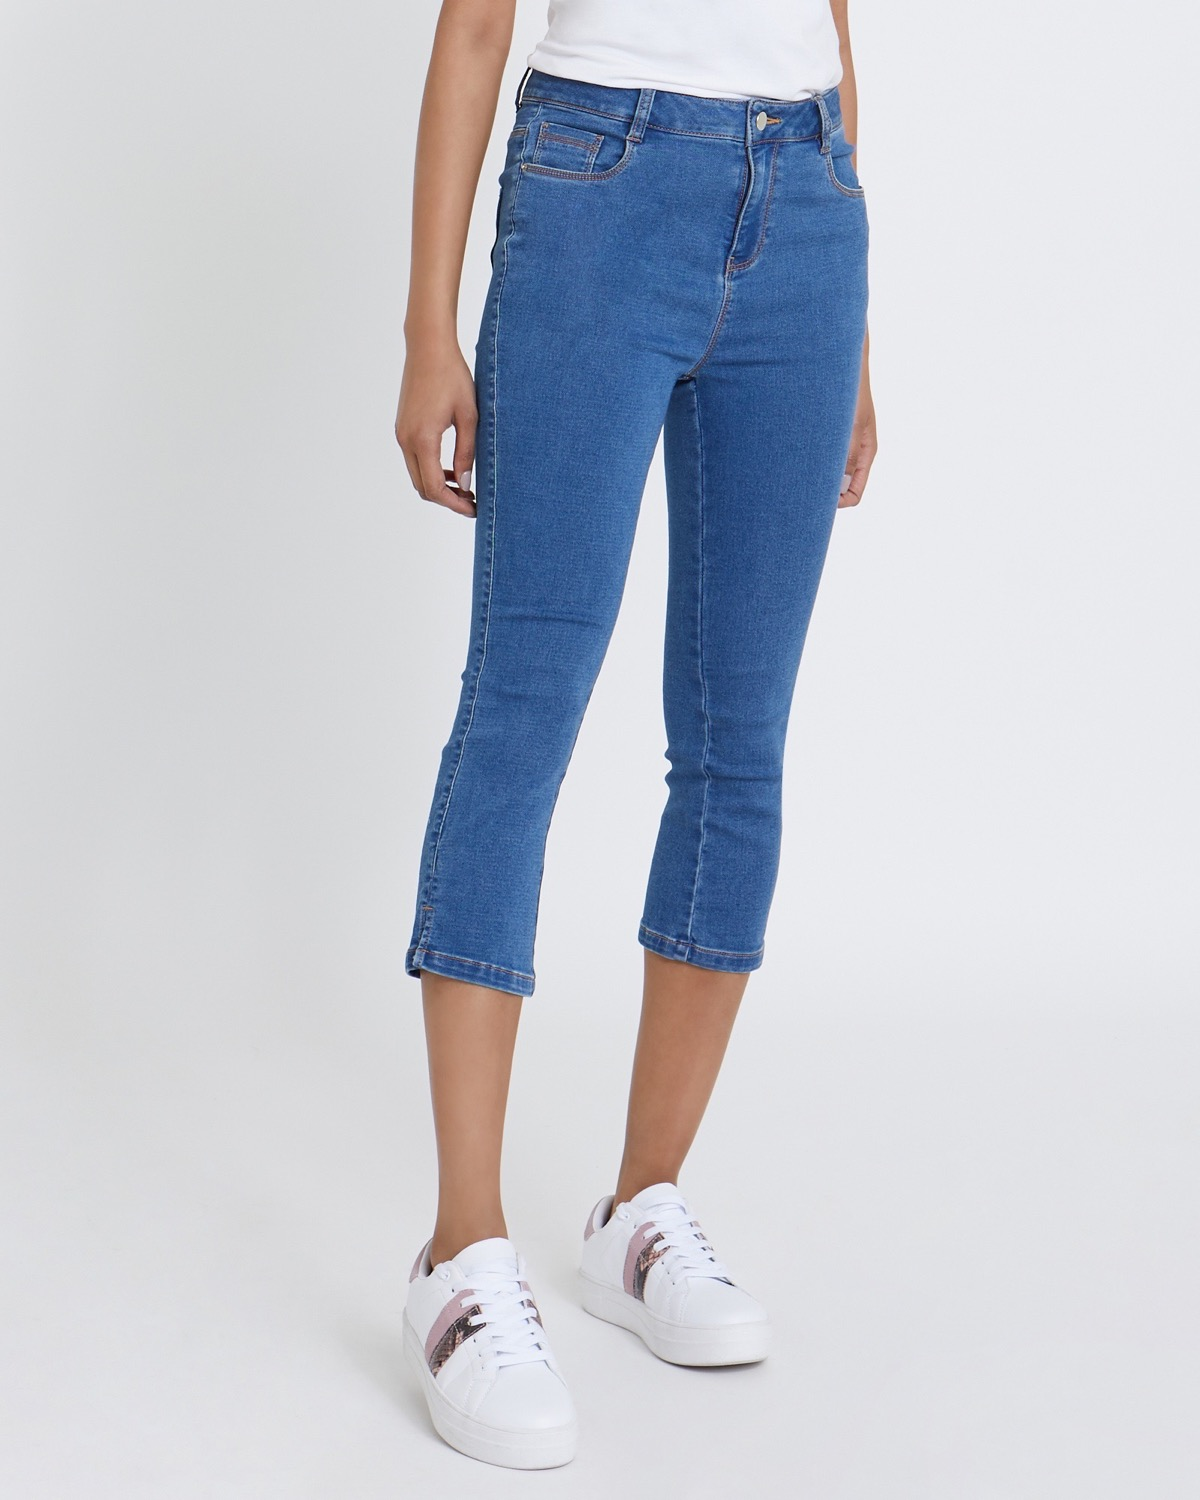 Knitted Denim Crop Jeans